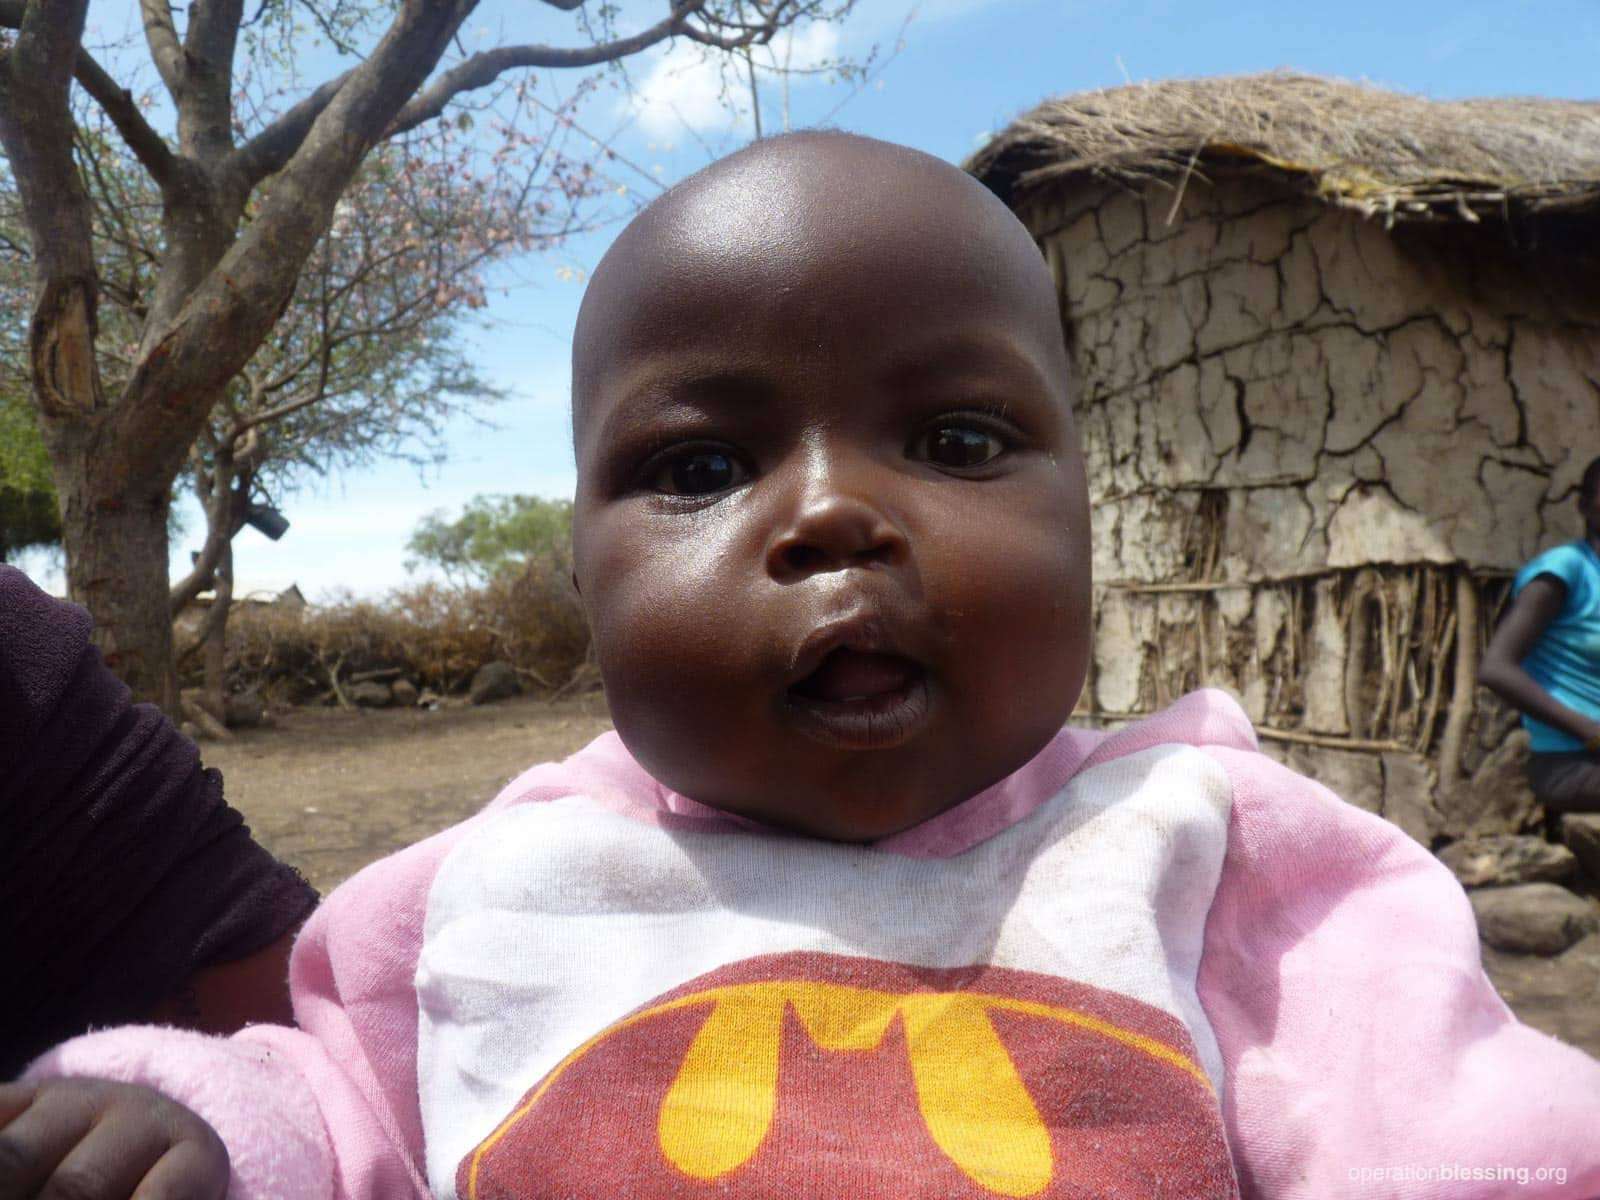 Baby Nkunkat after successful cleft lip surgery provided by Operation Blessing.